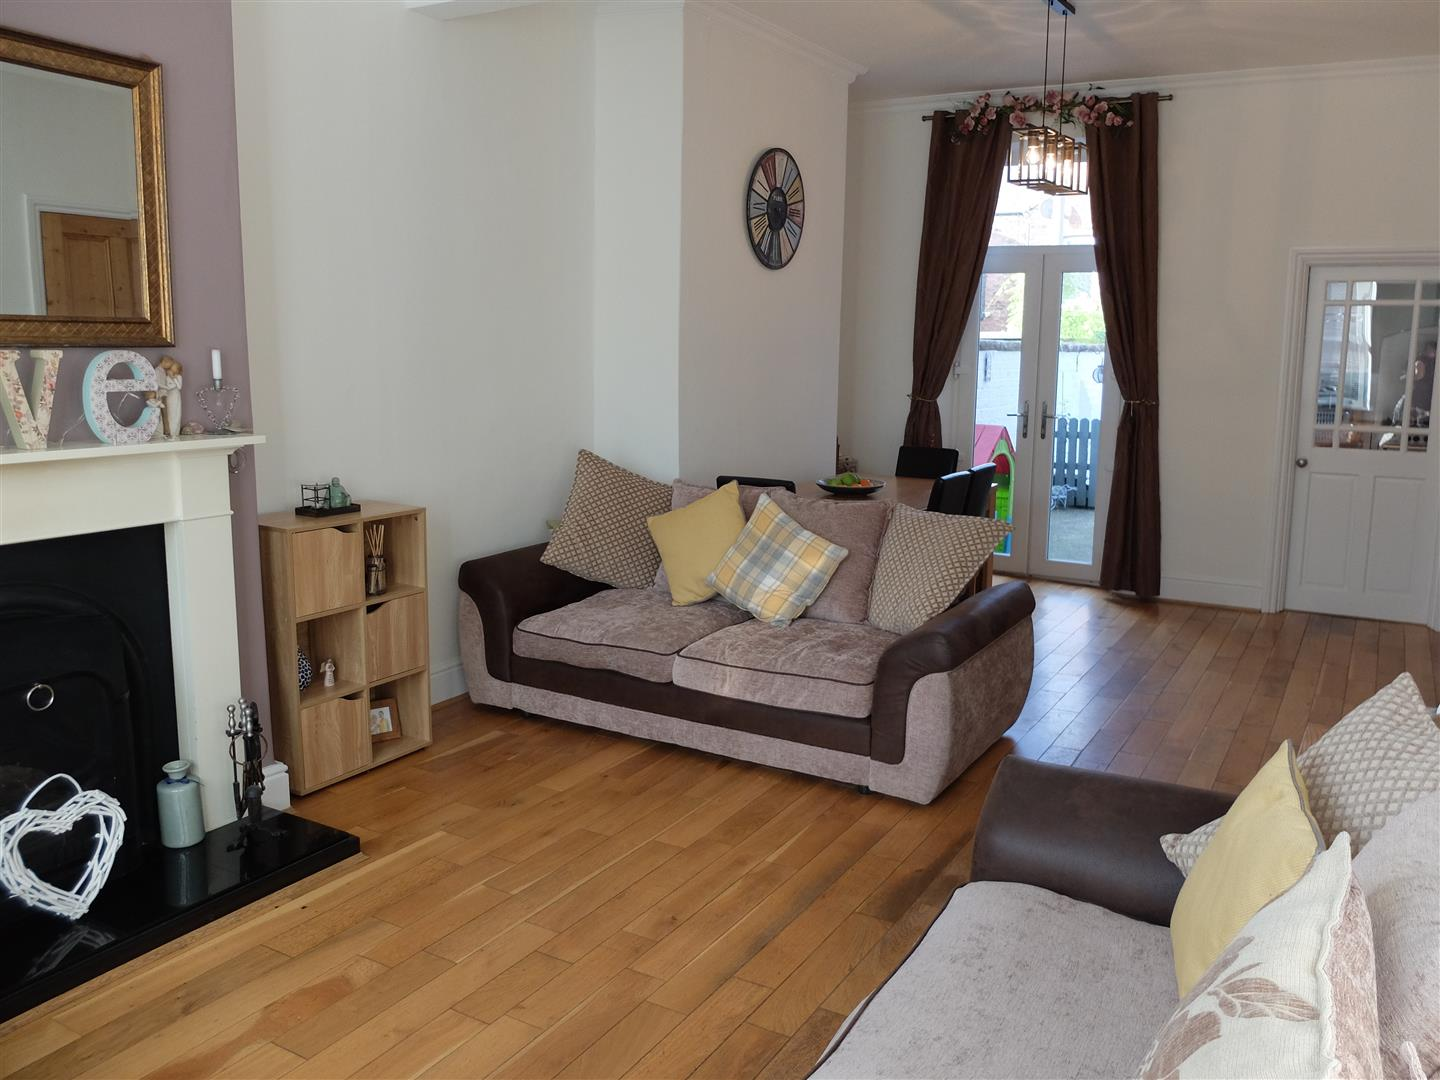 3 Bedrooms House - Mid Terrace For Sale 116 Newtown Road Carlisle